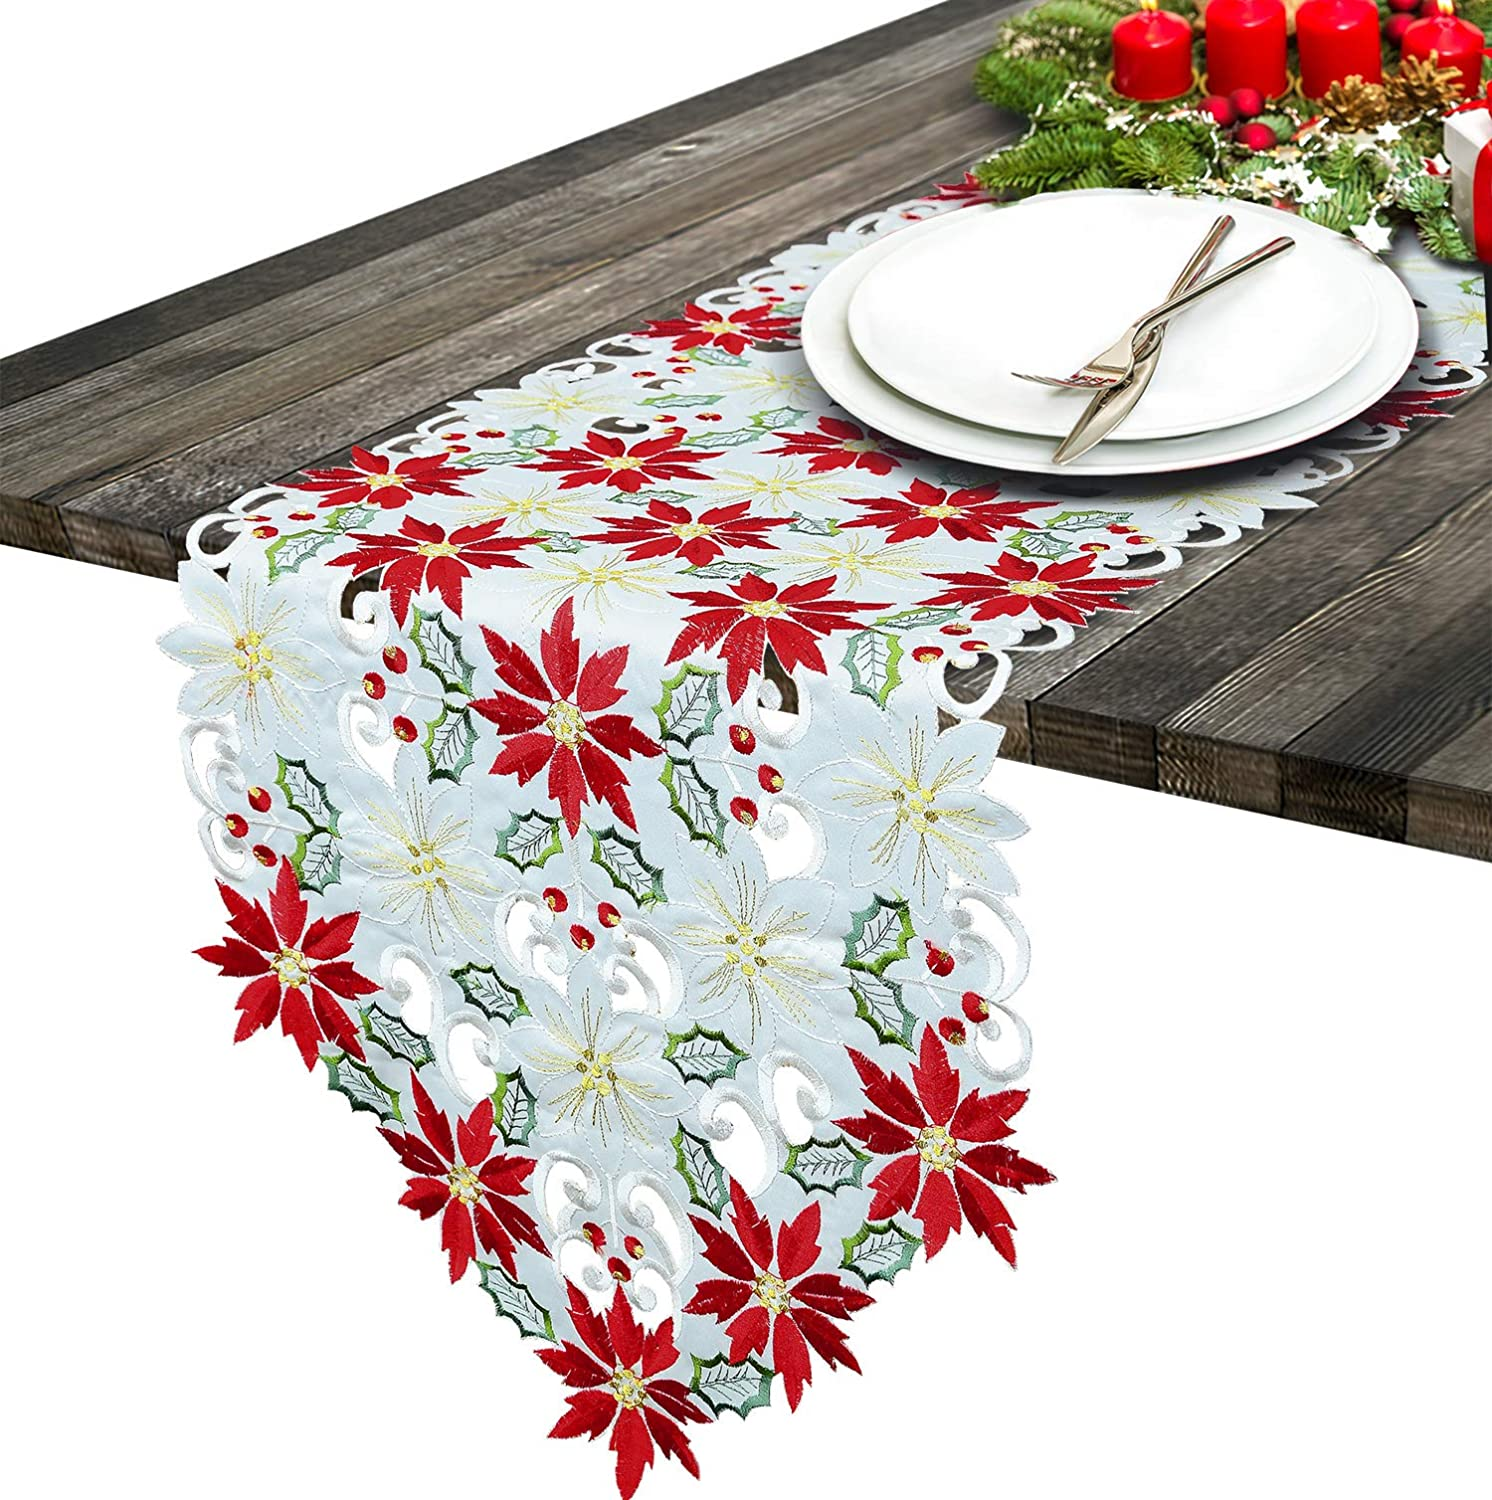 72-Inch by 90-Inch Xia Home Fashions Holly Berry Embroidered Cutwork Christmas Tablecloth